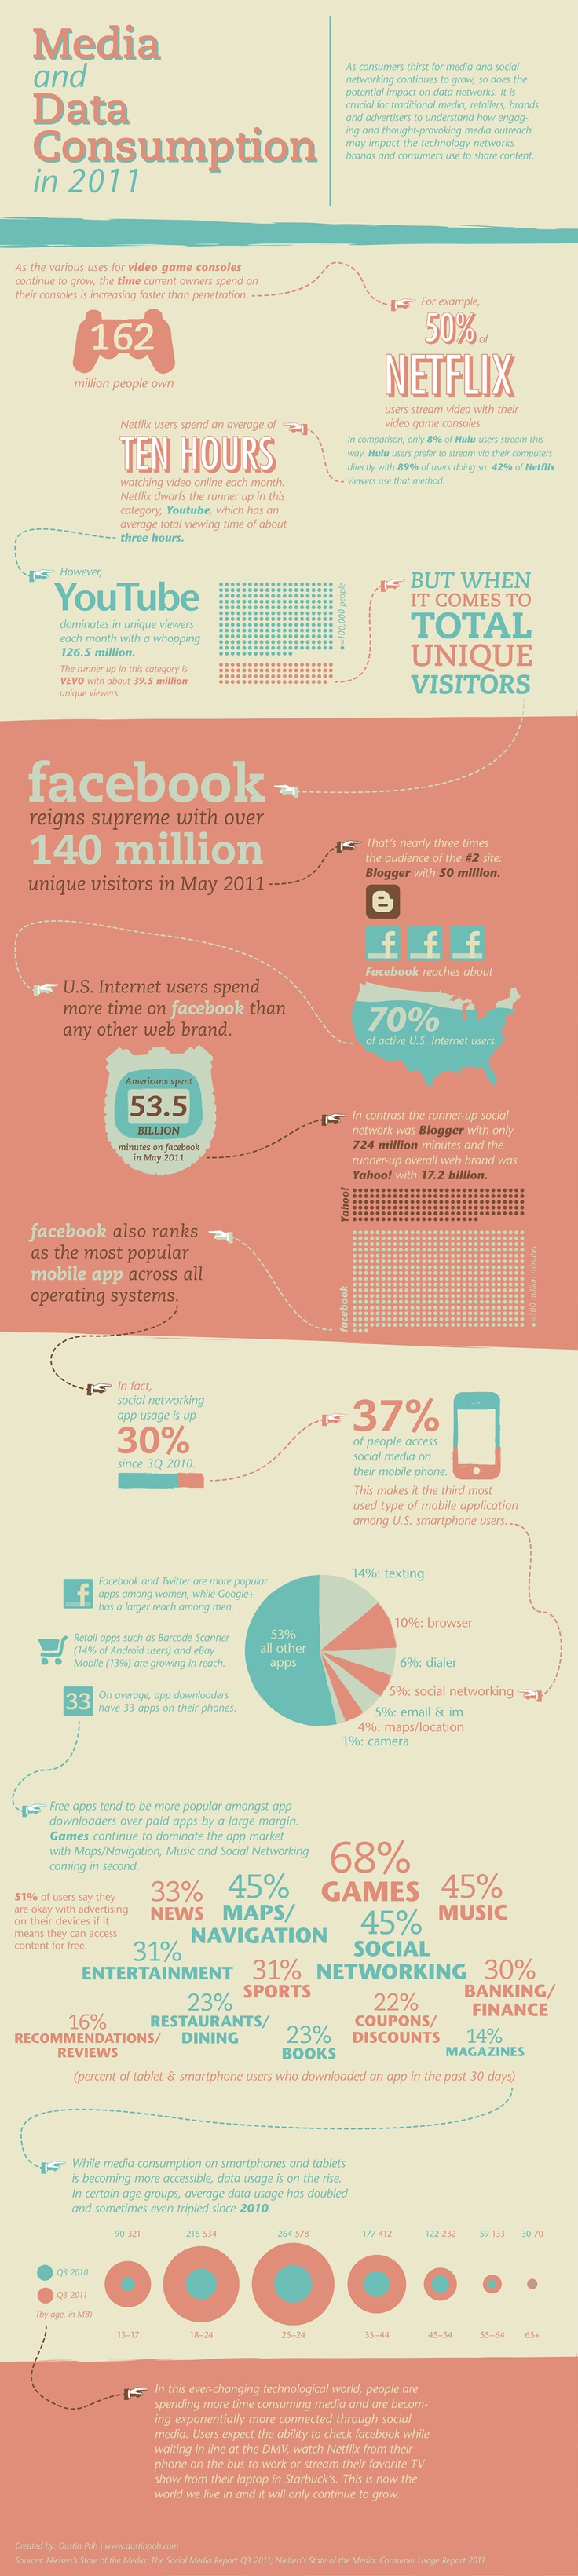 Media and Data Consumption in 2011 #socialmedia #stats based on: http://www.nielsen.com/campaigns/data-visualization-contest1.html: Infographic Images, Socialmedia Stat, Media Consumpt, Social Media, Media Infographic, Dataviz Infoviz, Data Consumpt, 2011 Socialmedia, Given Visual